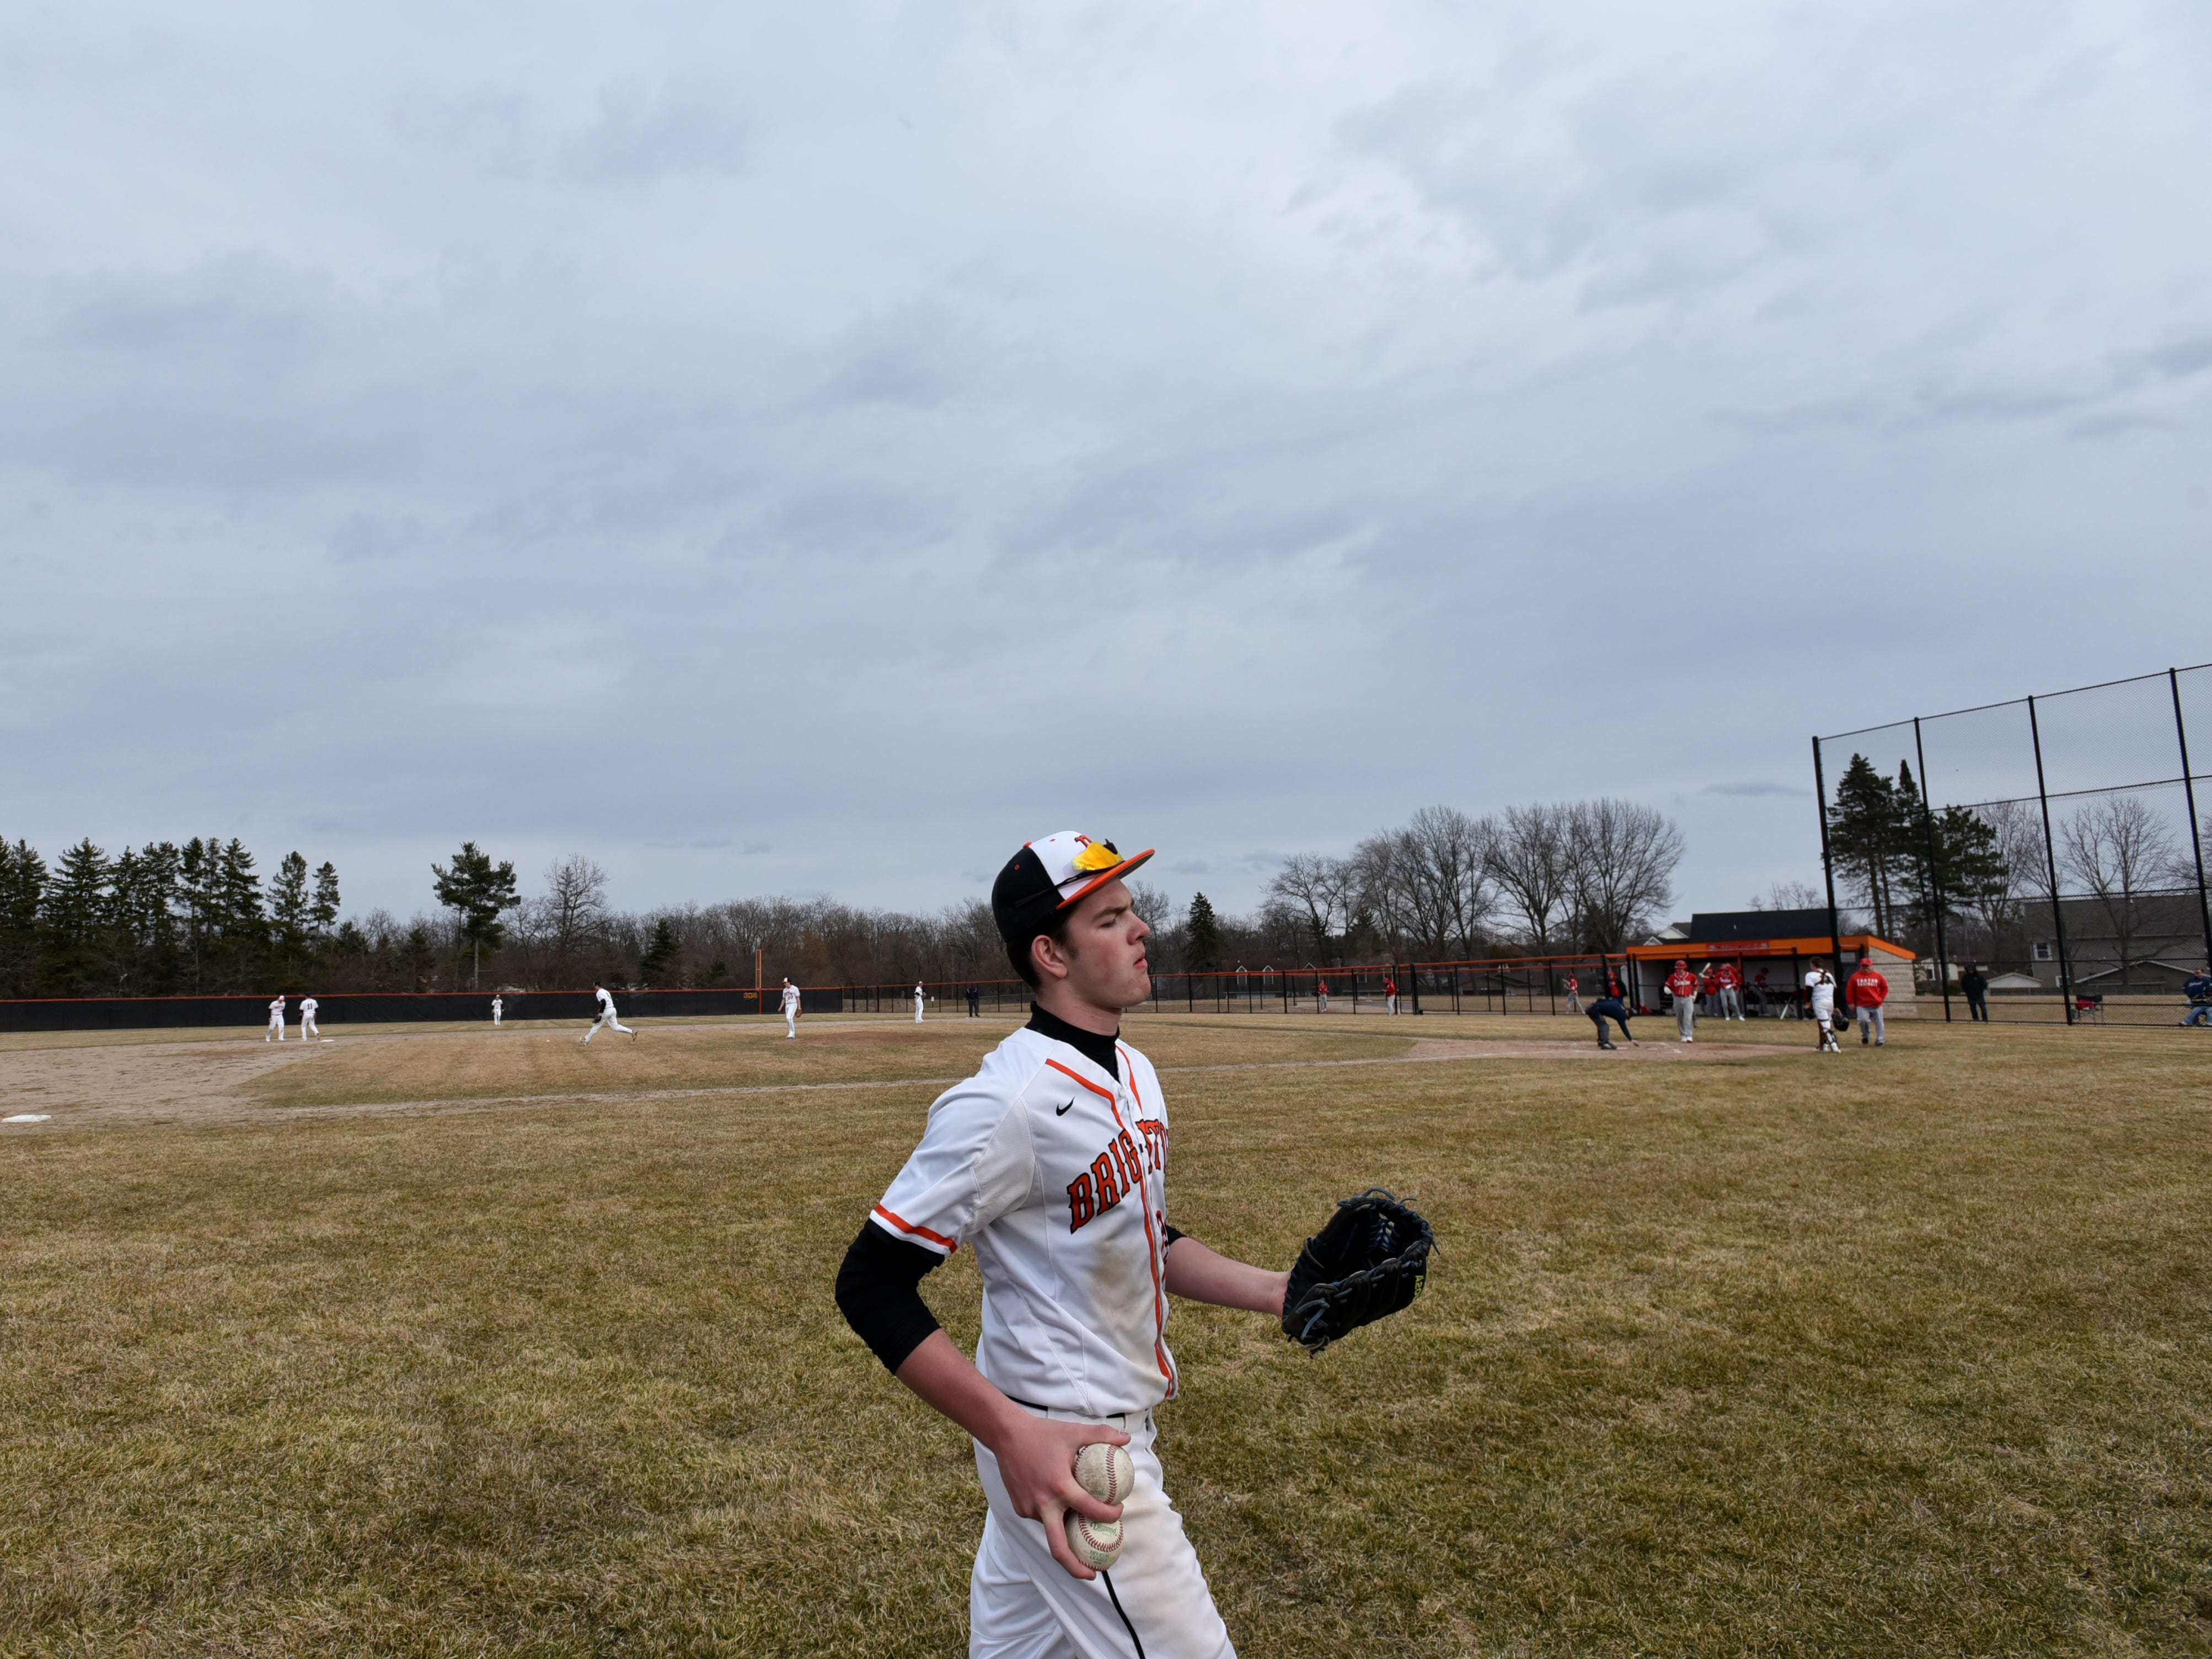 Brighton's April 2nd home game was played under sunny skies - and then clouds.